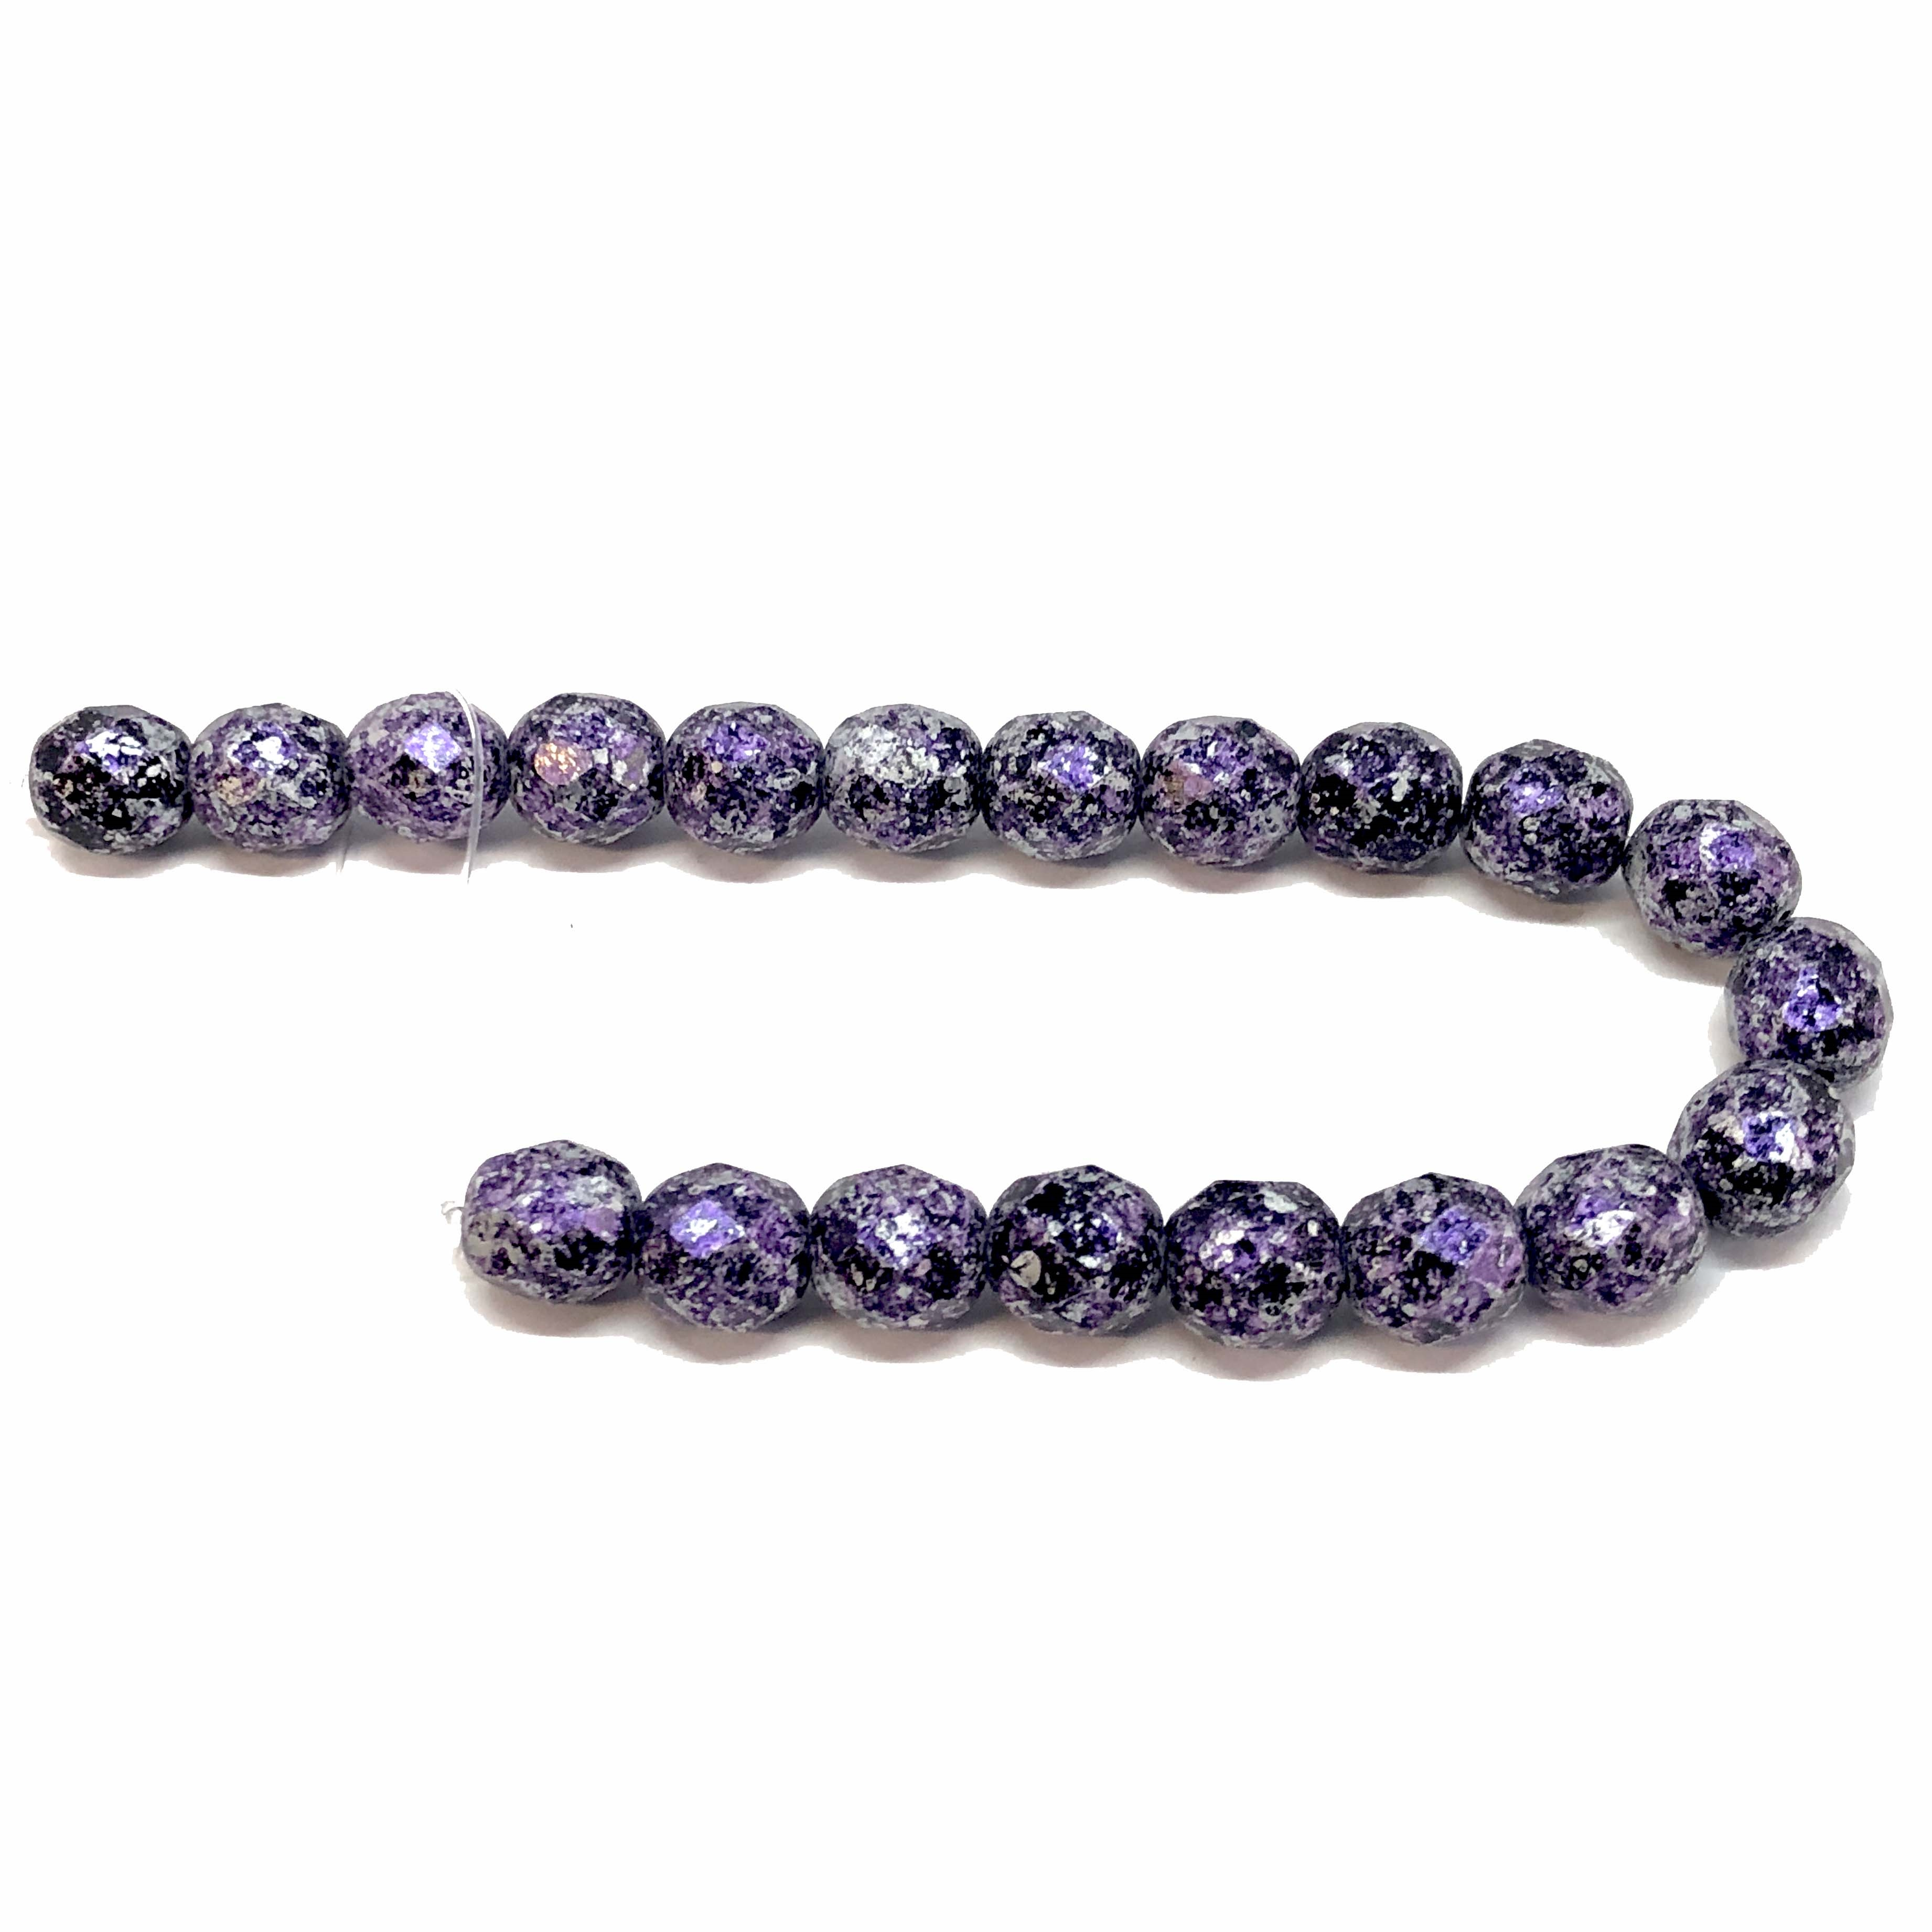 Czech Preciosa glass tweedy green beads, Czech glass beads, glass beads, beads, fire polished, tweedy violet, black and purple beads, faceted beads, beading supplies, jewelry making, B'sue Boutiques, temp strung bead, 8mm bead, 8mm, vintage beads, 09373